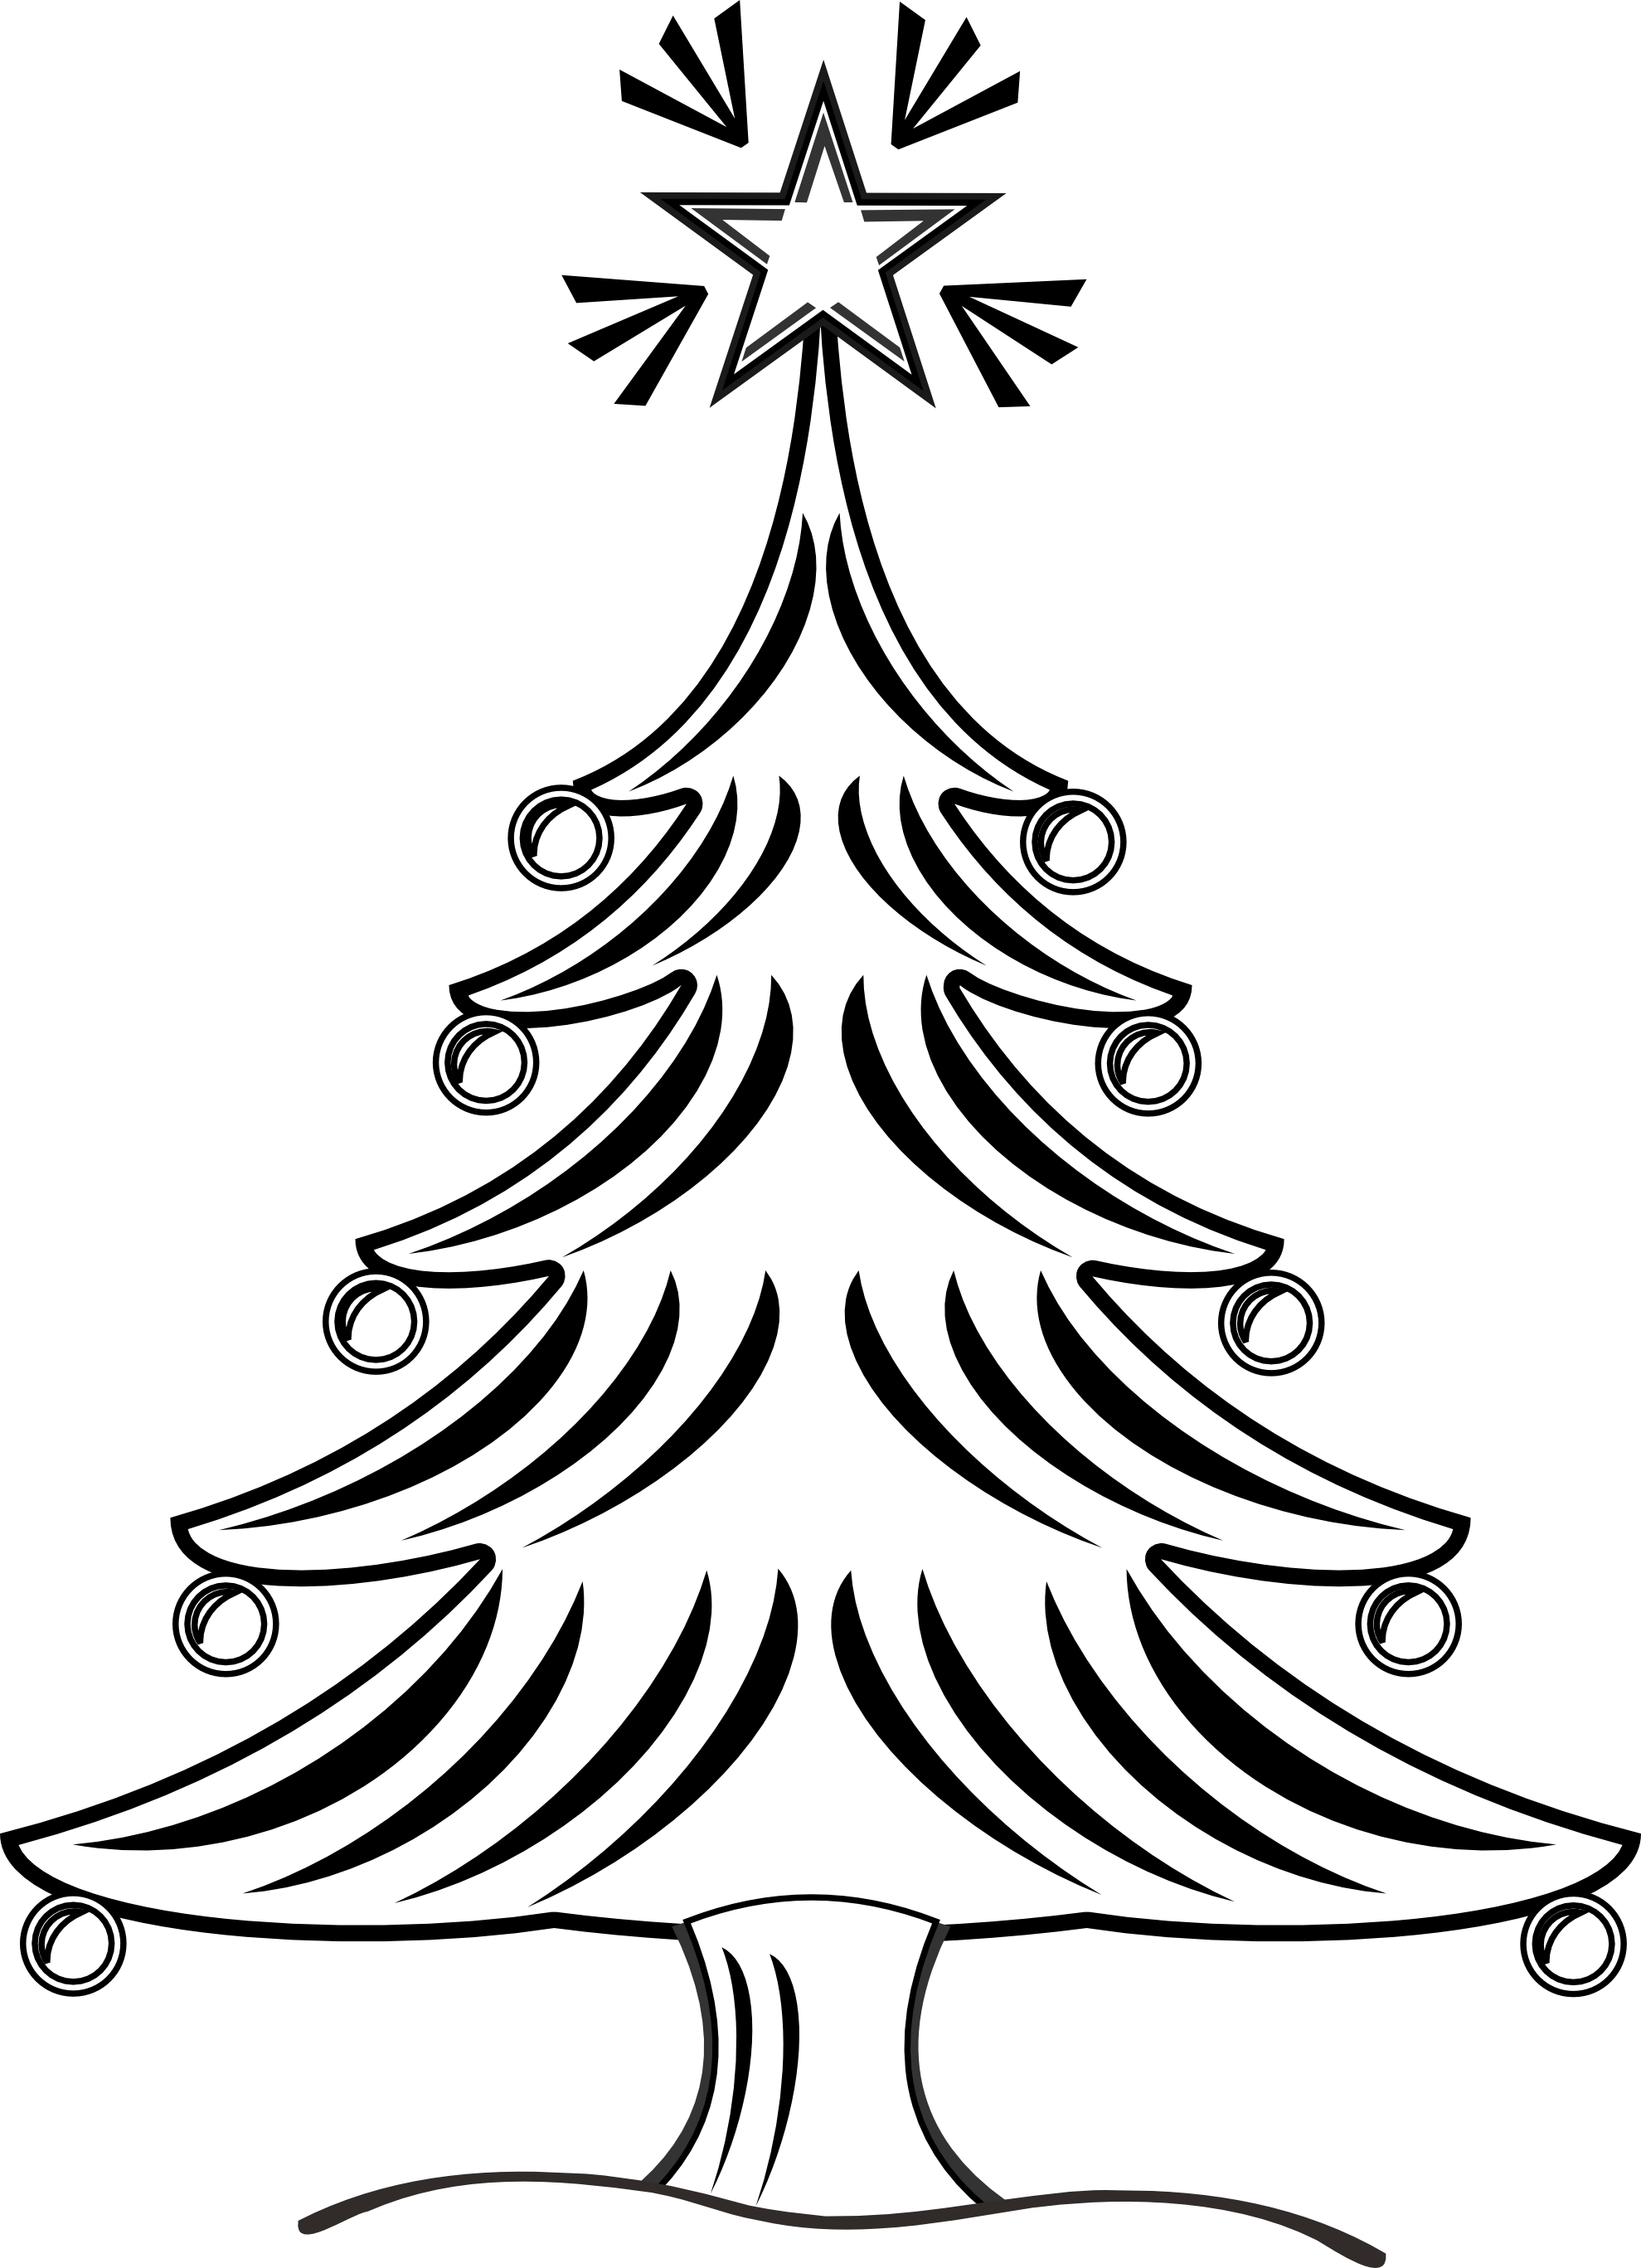 Simple christmas bell black and white clipart clipart royalty free stock Free Christmas Clip Art Black And White, Download Free Clip Art ... clipart royalty free stock